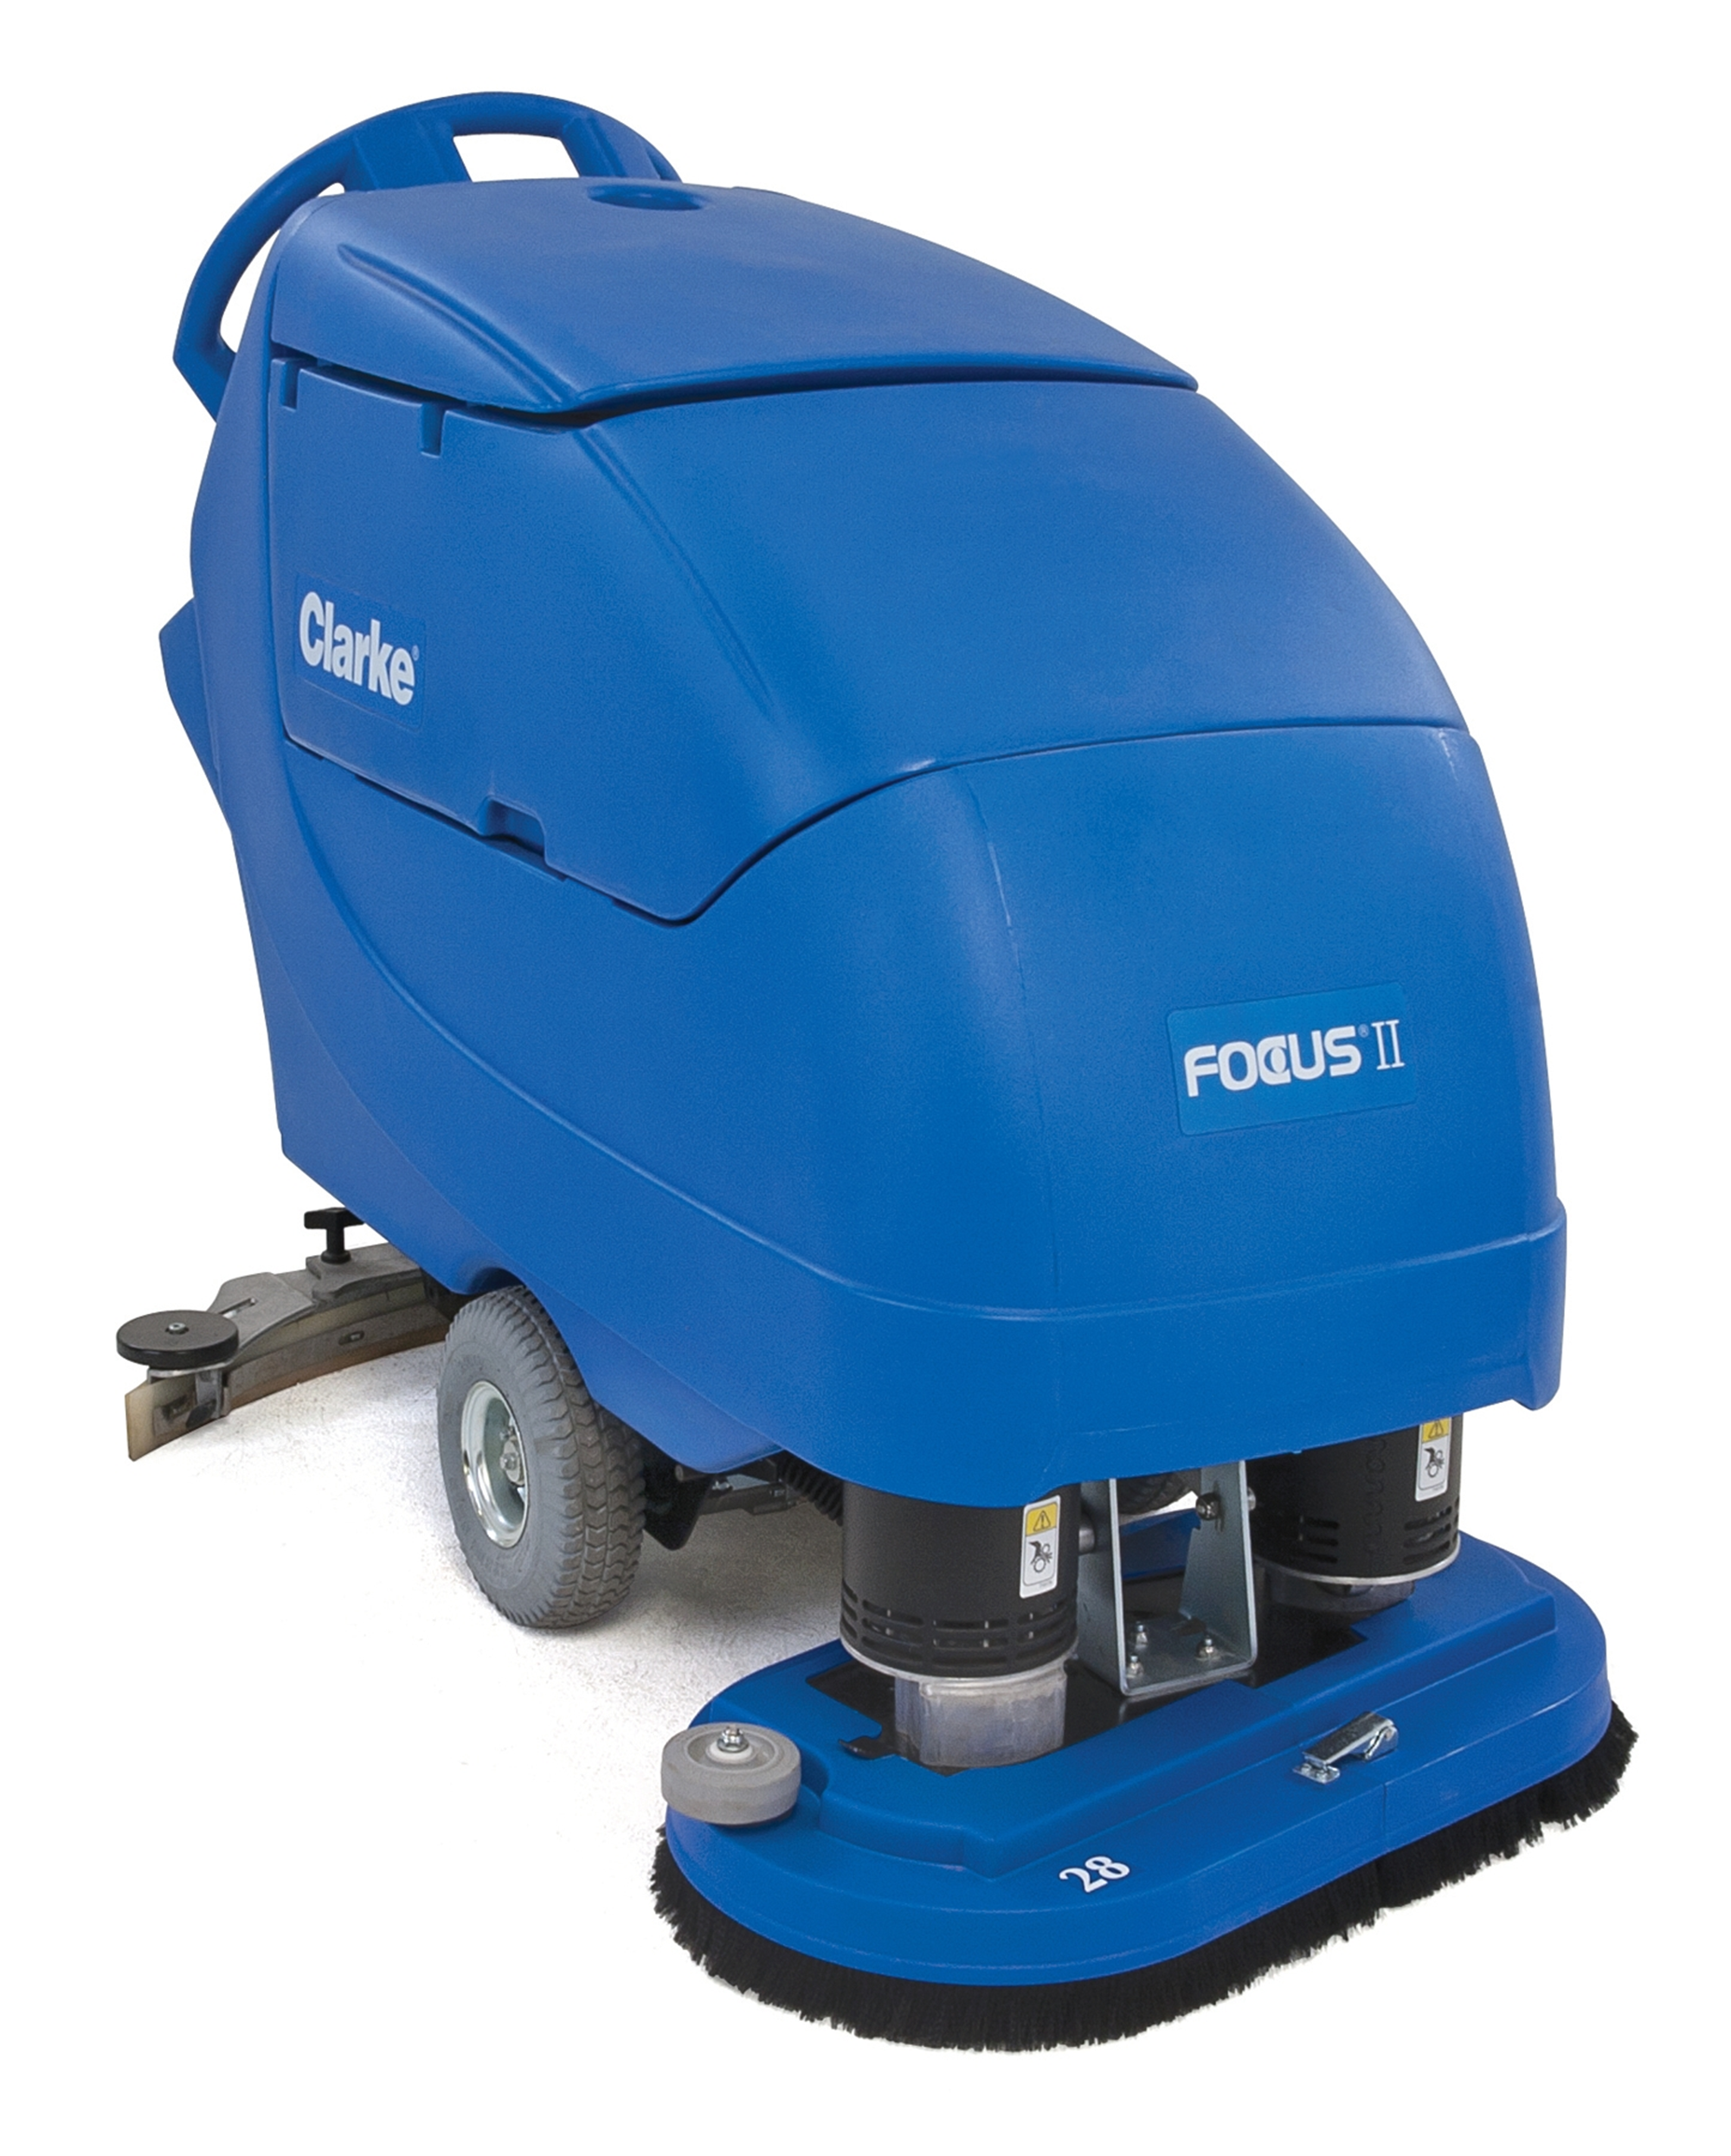 Product, Floor Cleaning, Scrubbers, Walk-behind Scrubbers, Large, Nilfisk, FOCUS II BOOST28 242AH CHEM